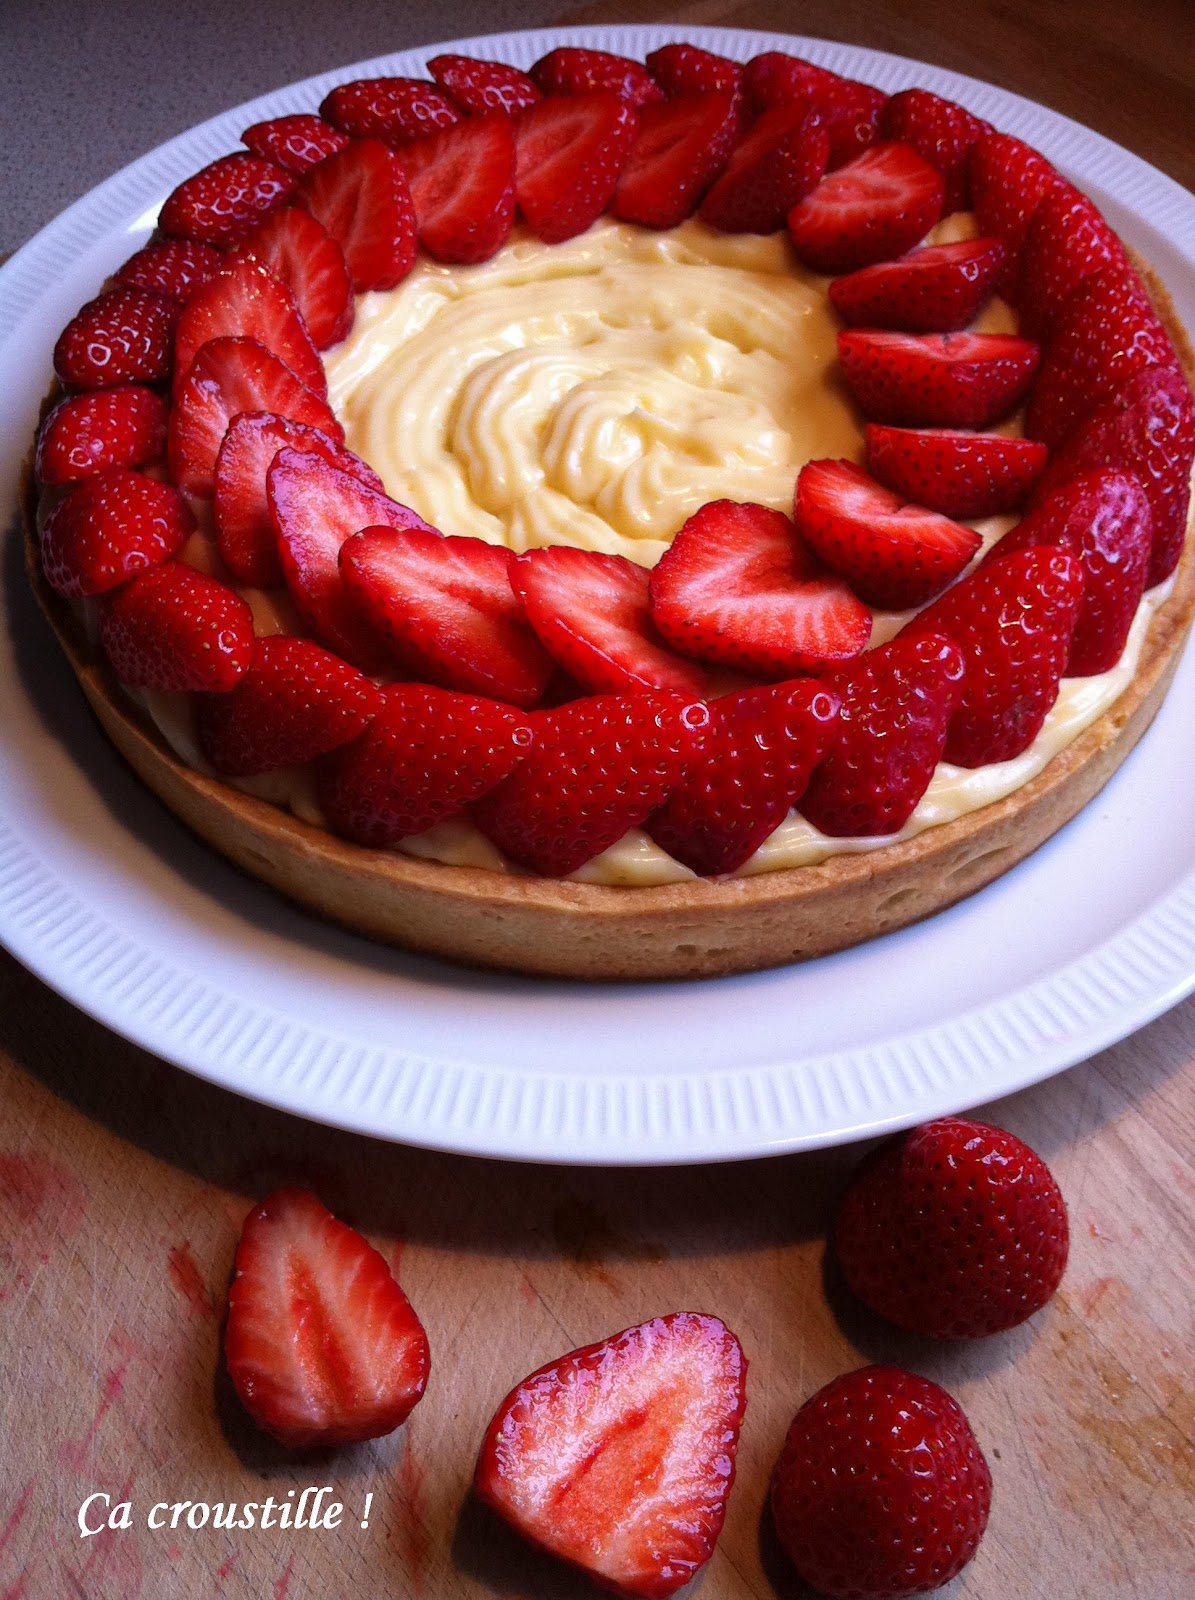 Tarte fraise creme patissiere chantilly